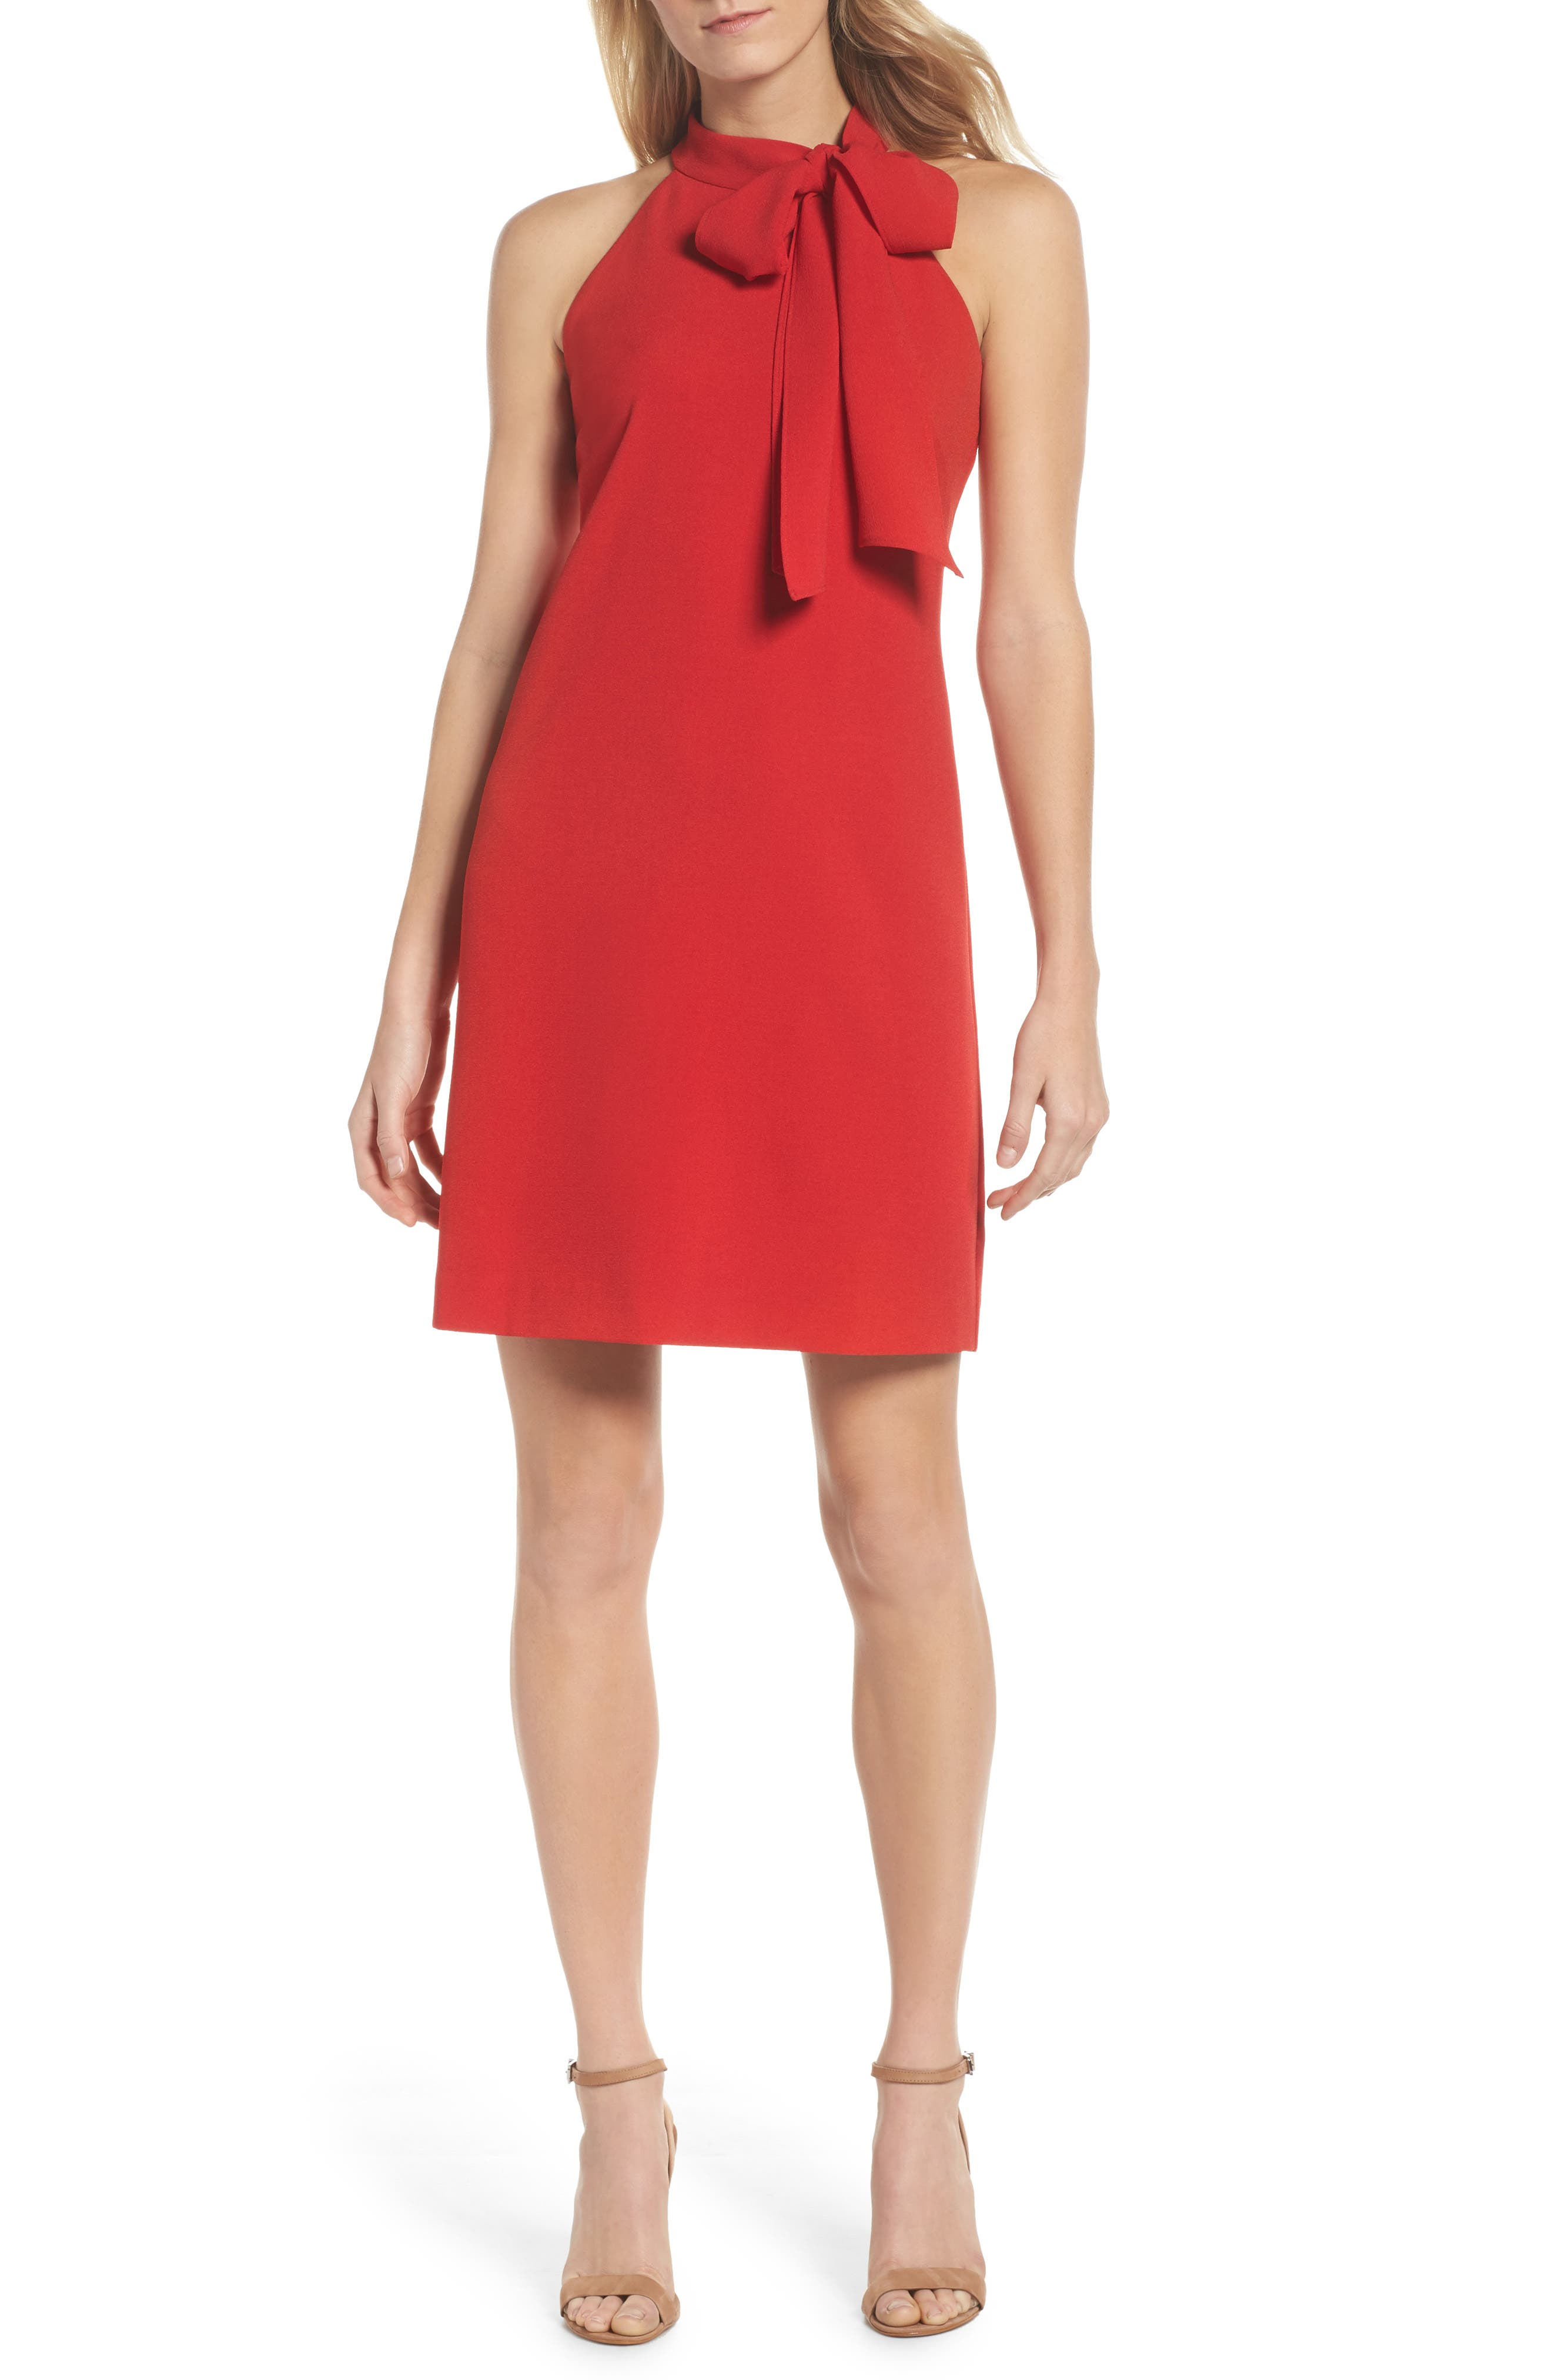 VINCE CAMUTO, Halter Tie Neck A-Line Dress, Main thumbnail 1, color, RED